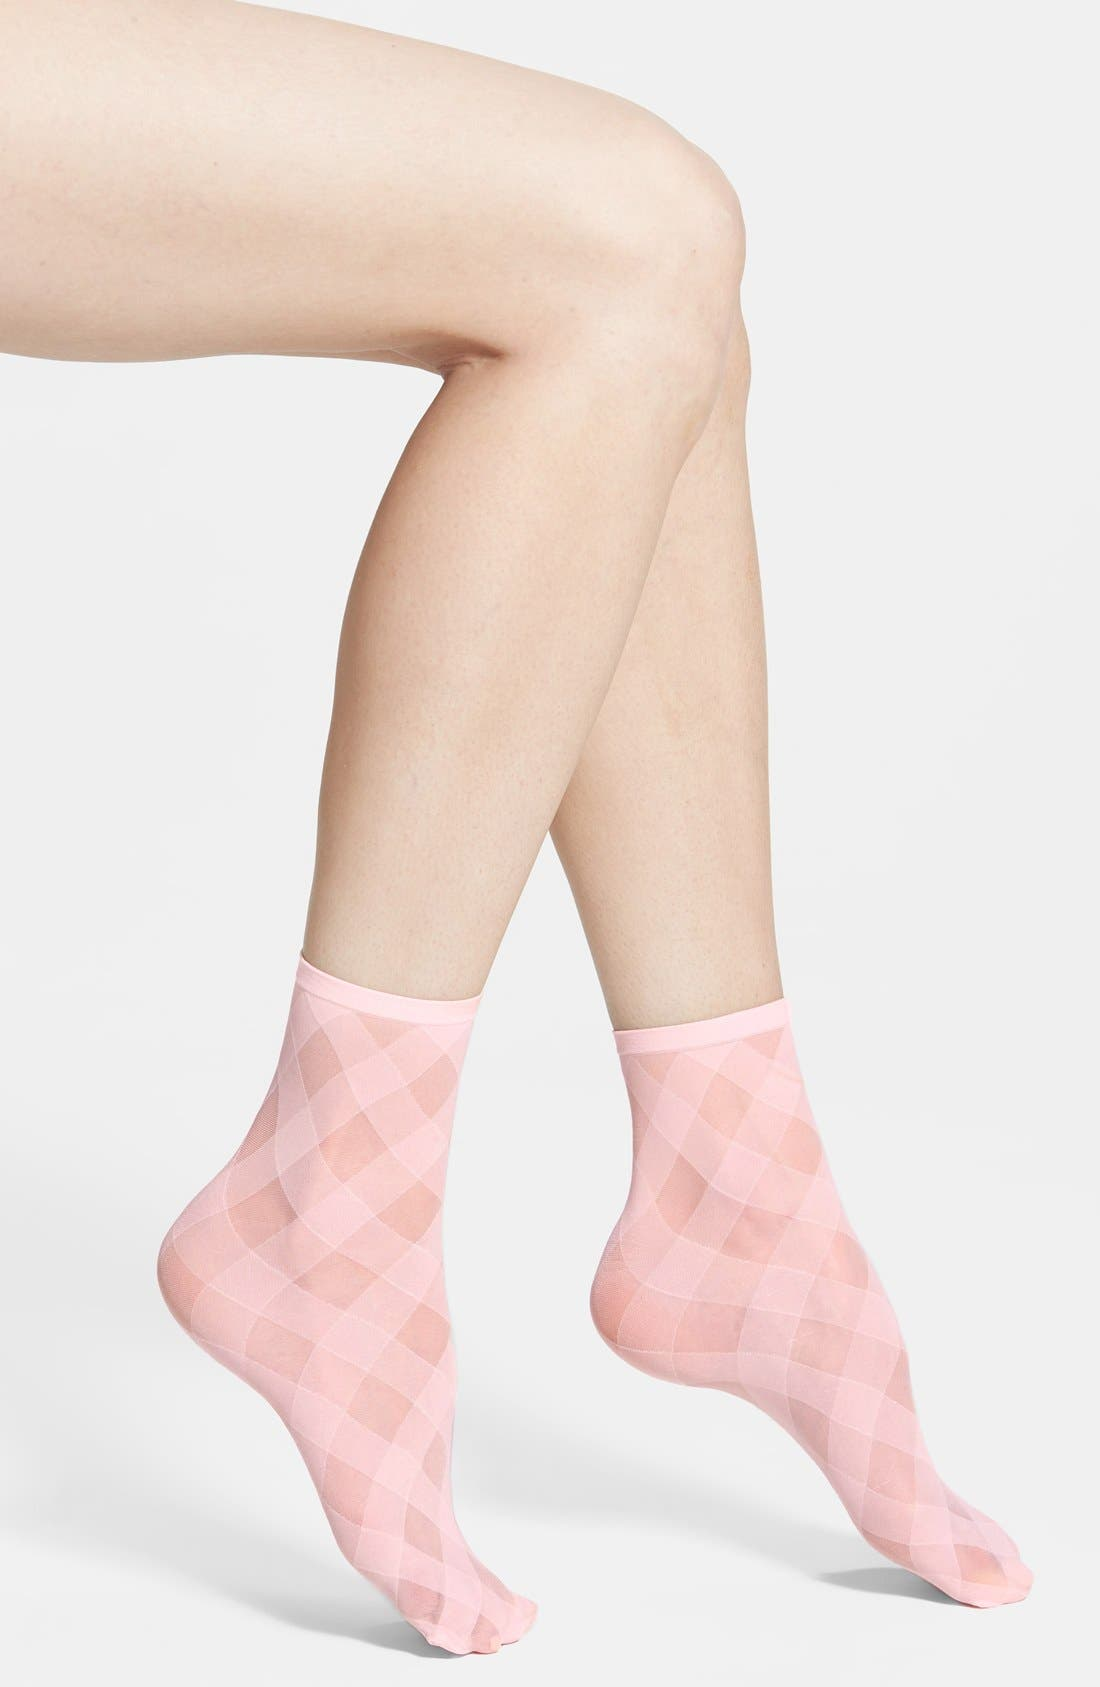 Alternate Image 1 Selected - Hue 'Diagonal Ribbon' Sheer Ankle Socks